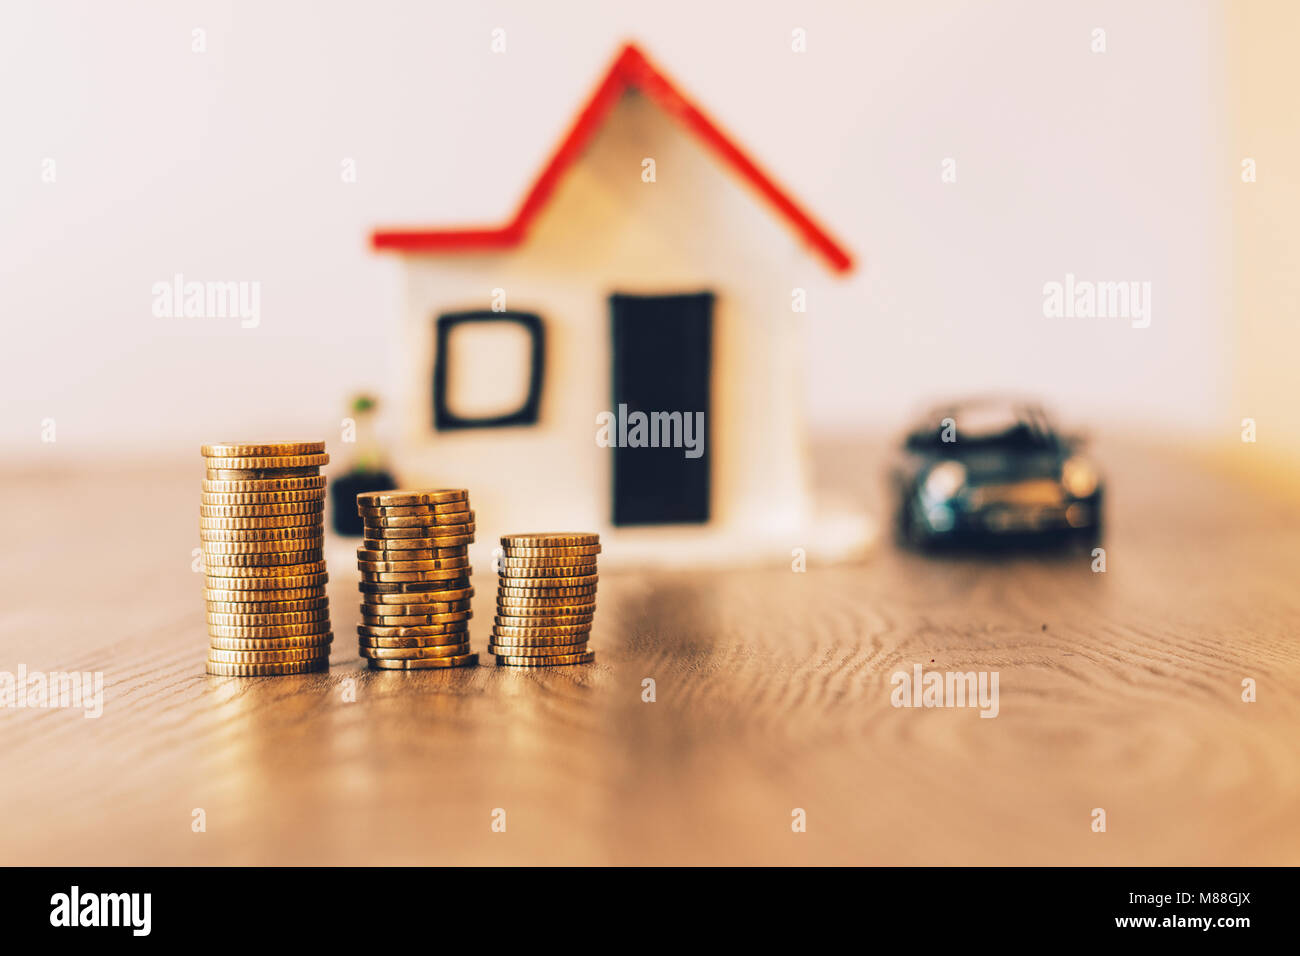 Coins stacked on top of a wooden table, with a blurred house and car on the background: real estate, property investment, - Stock Image